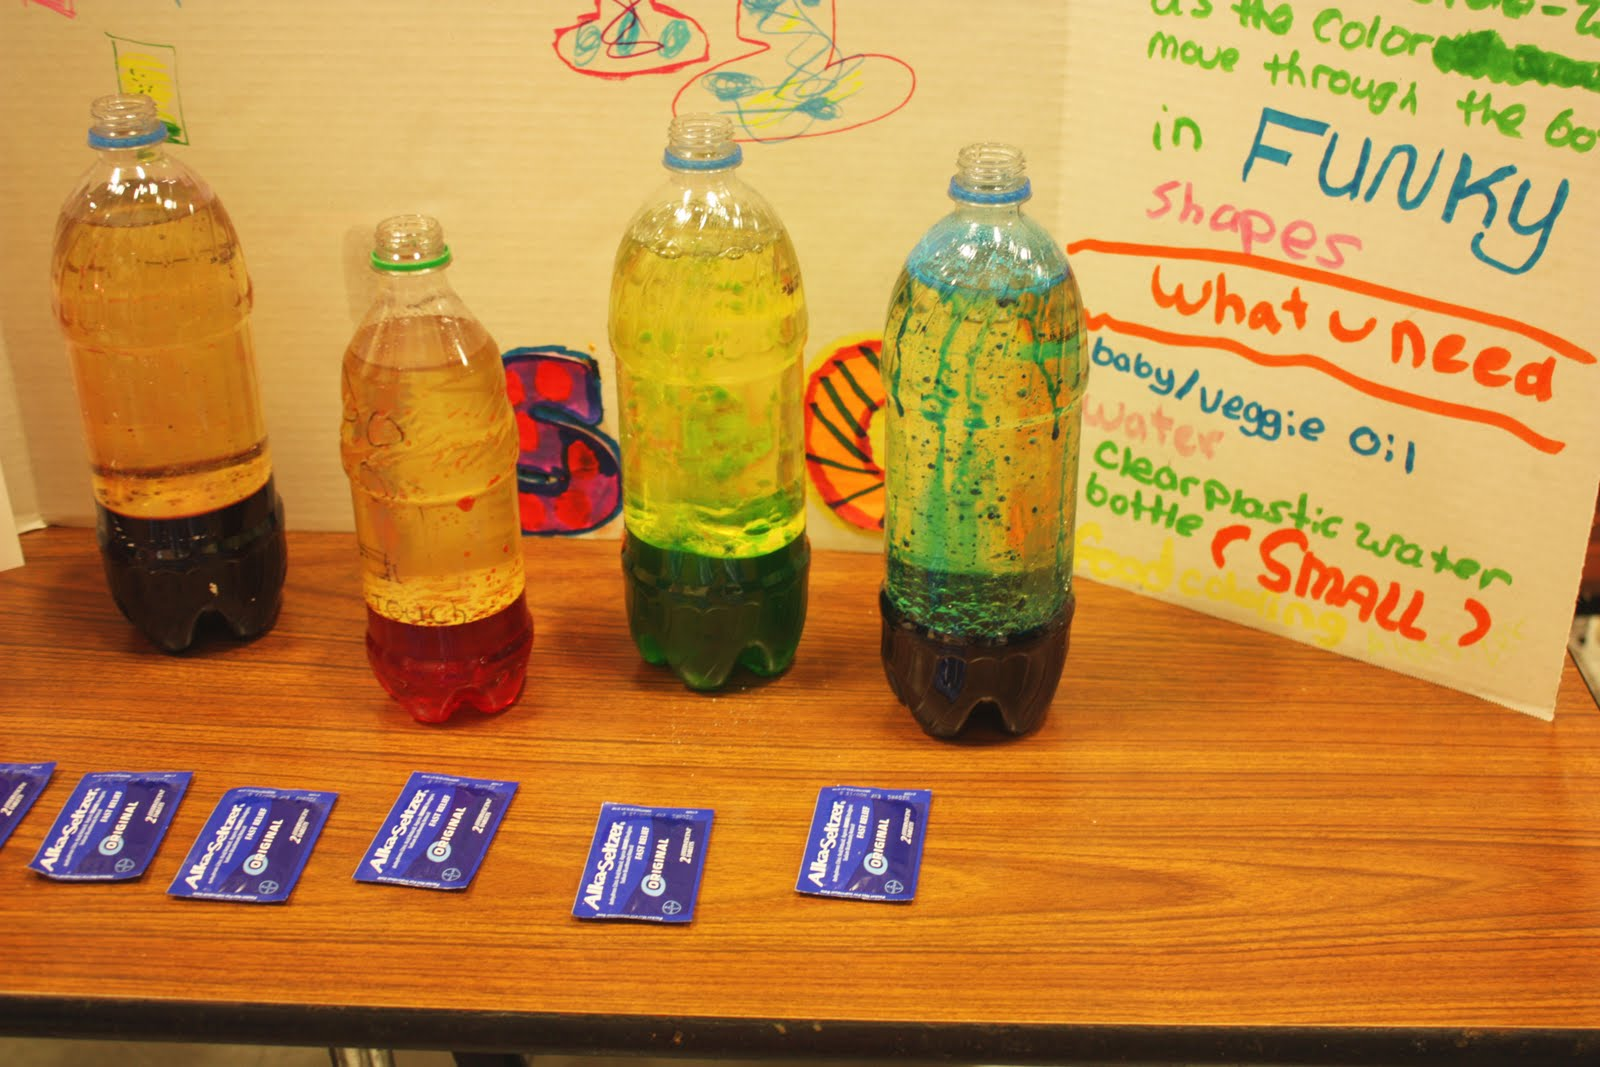 Image Gallery of Homemade Lava Lamp Science Fair Project